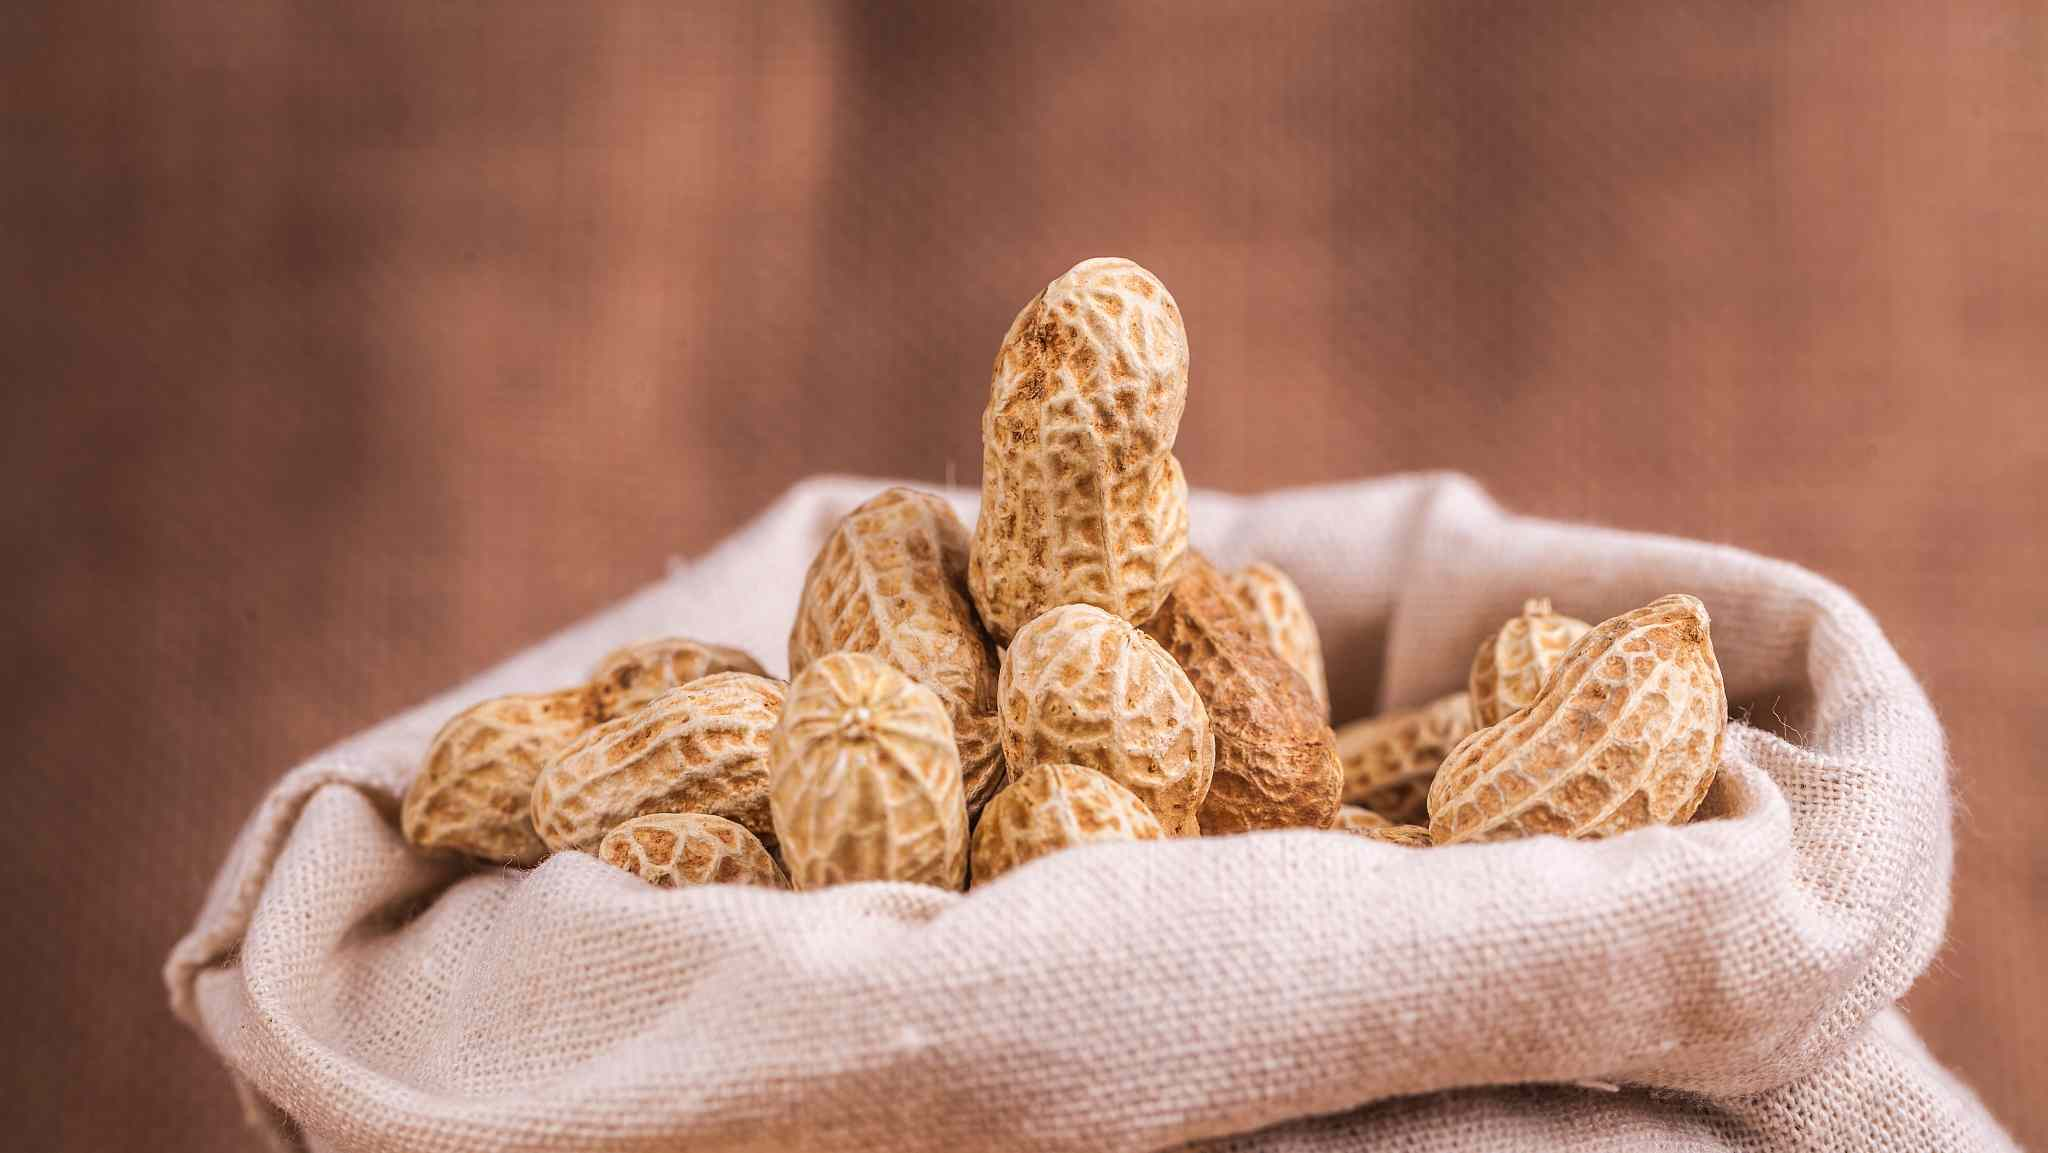 Quick Quiz: Which country is the largest peanut importer of Senegal